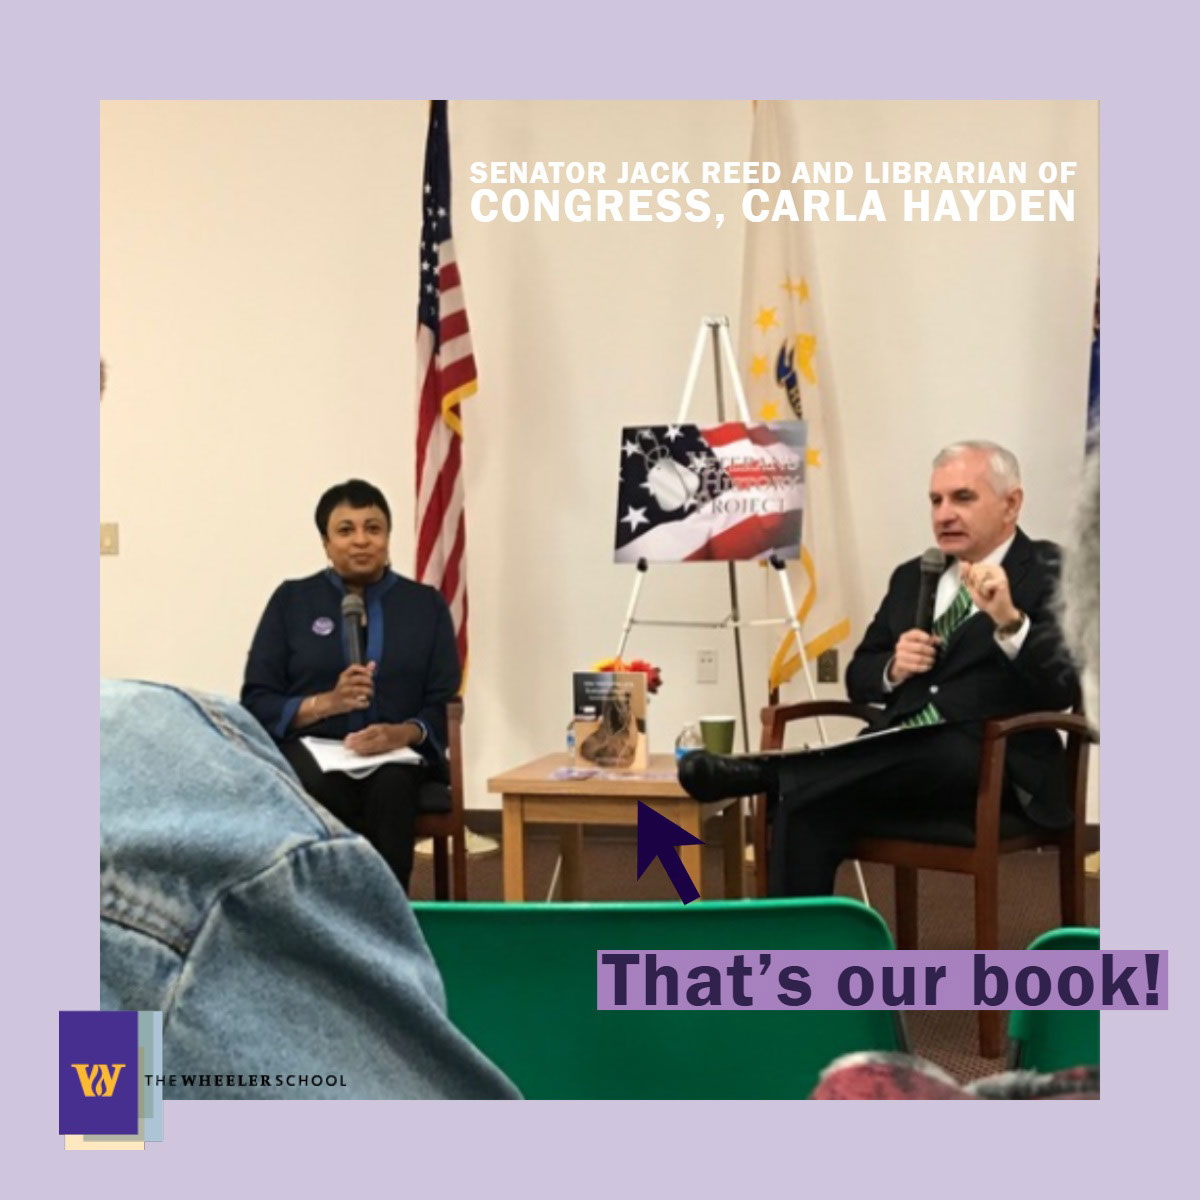 That's our book! That's our book!<P>Senator Jack Reed and Librarian of Congress, Carla Hayden